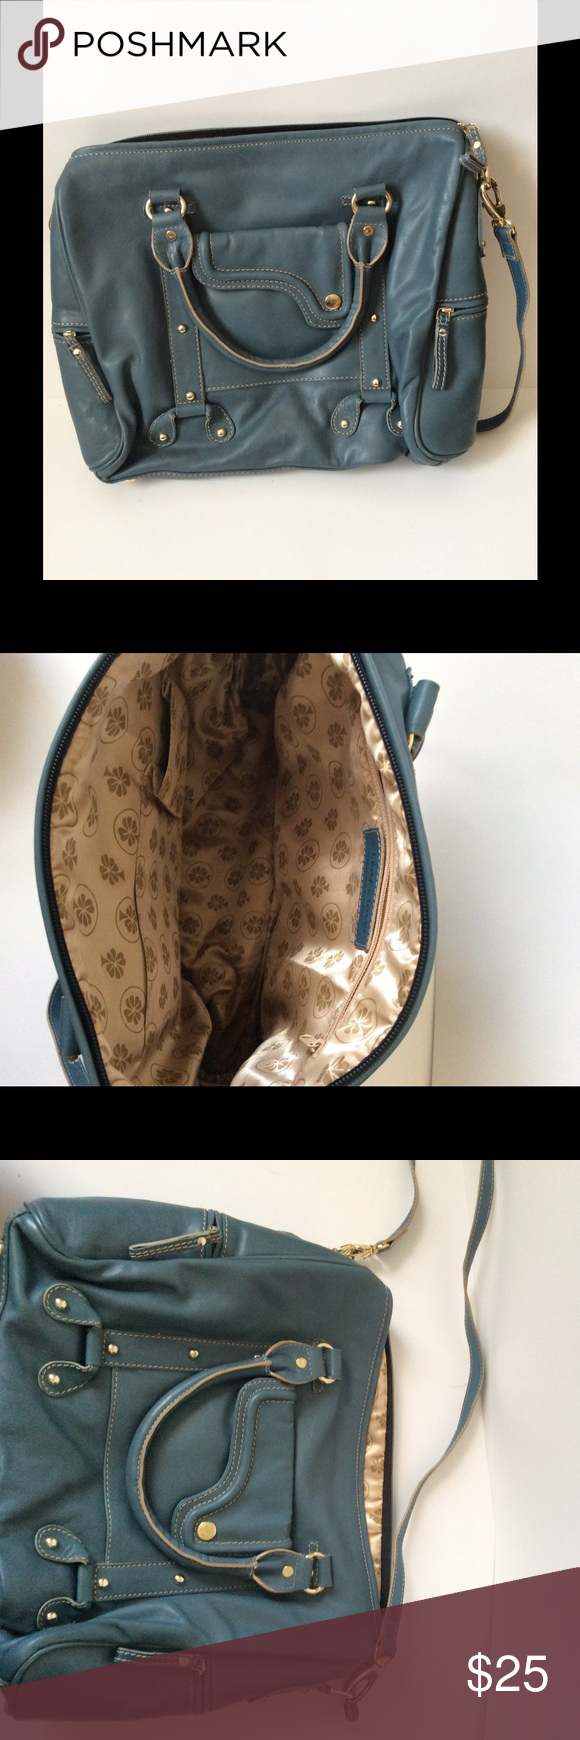 Large blue handbag- tons of pockets! Perfect large purse with lots of pockets. Can fit small laptop. Great condition! Bags Shoulder Bags